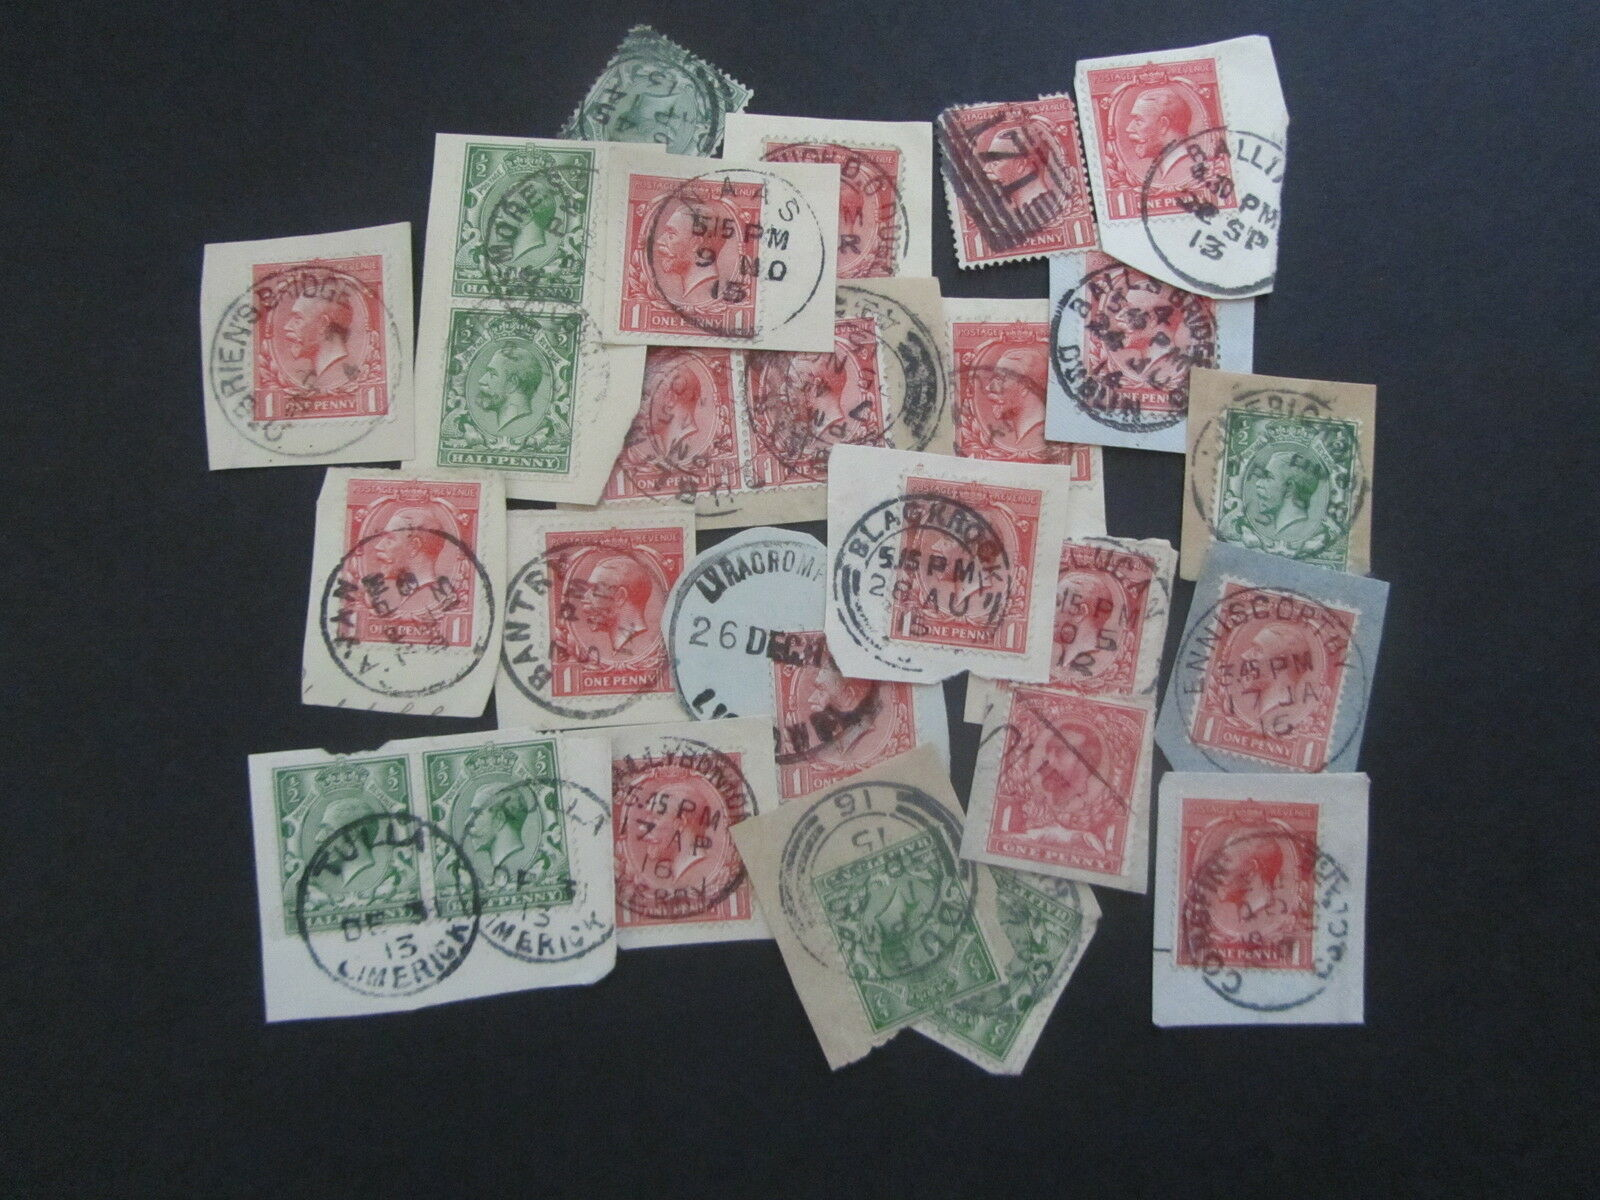 Stamps & Collectibles by Ranta